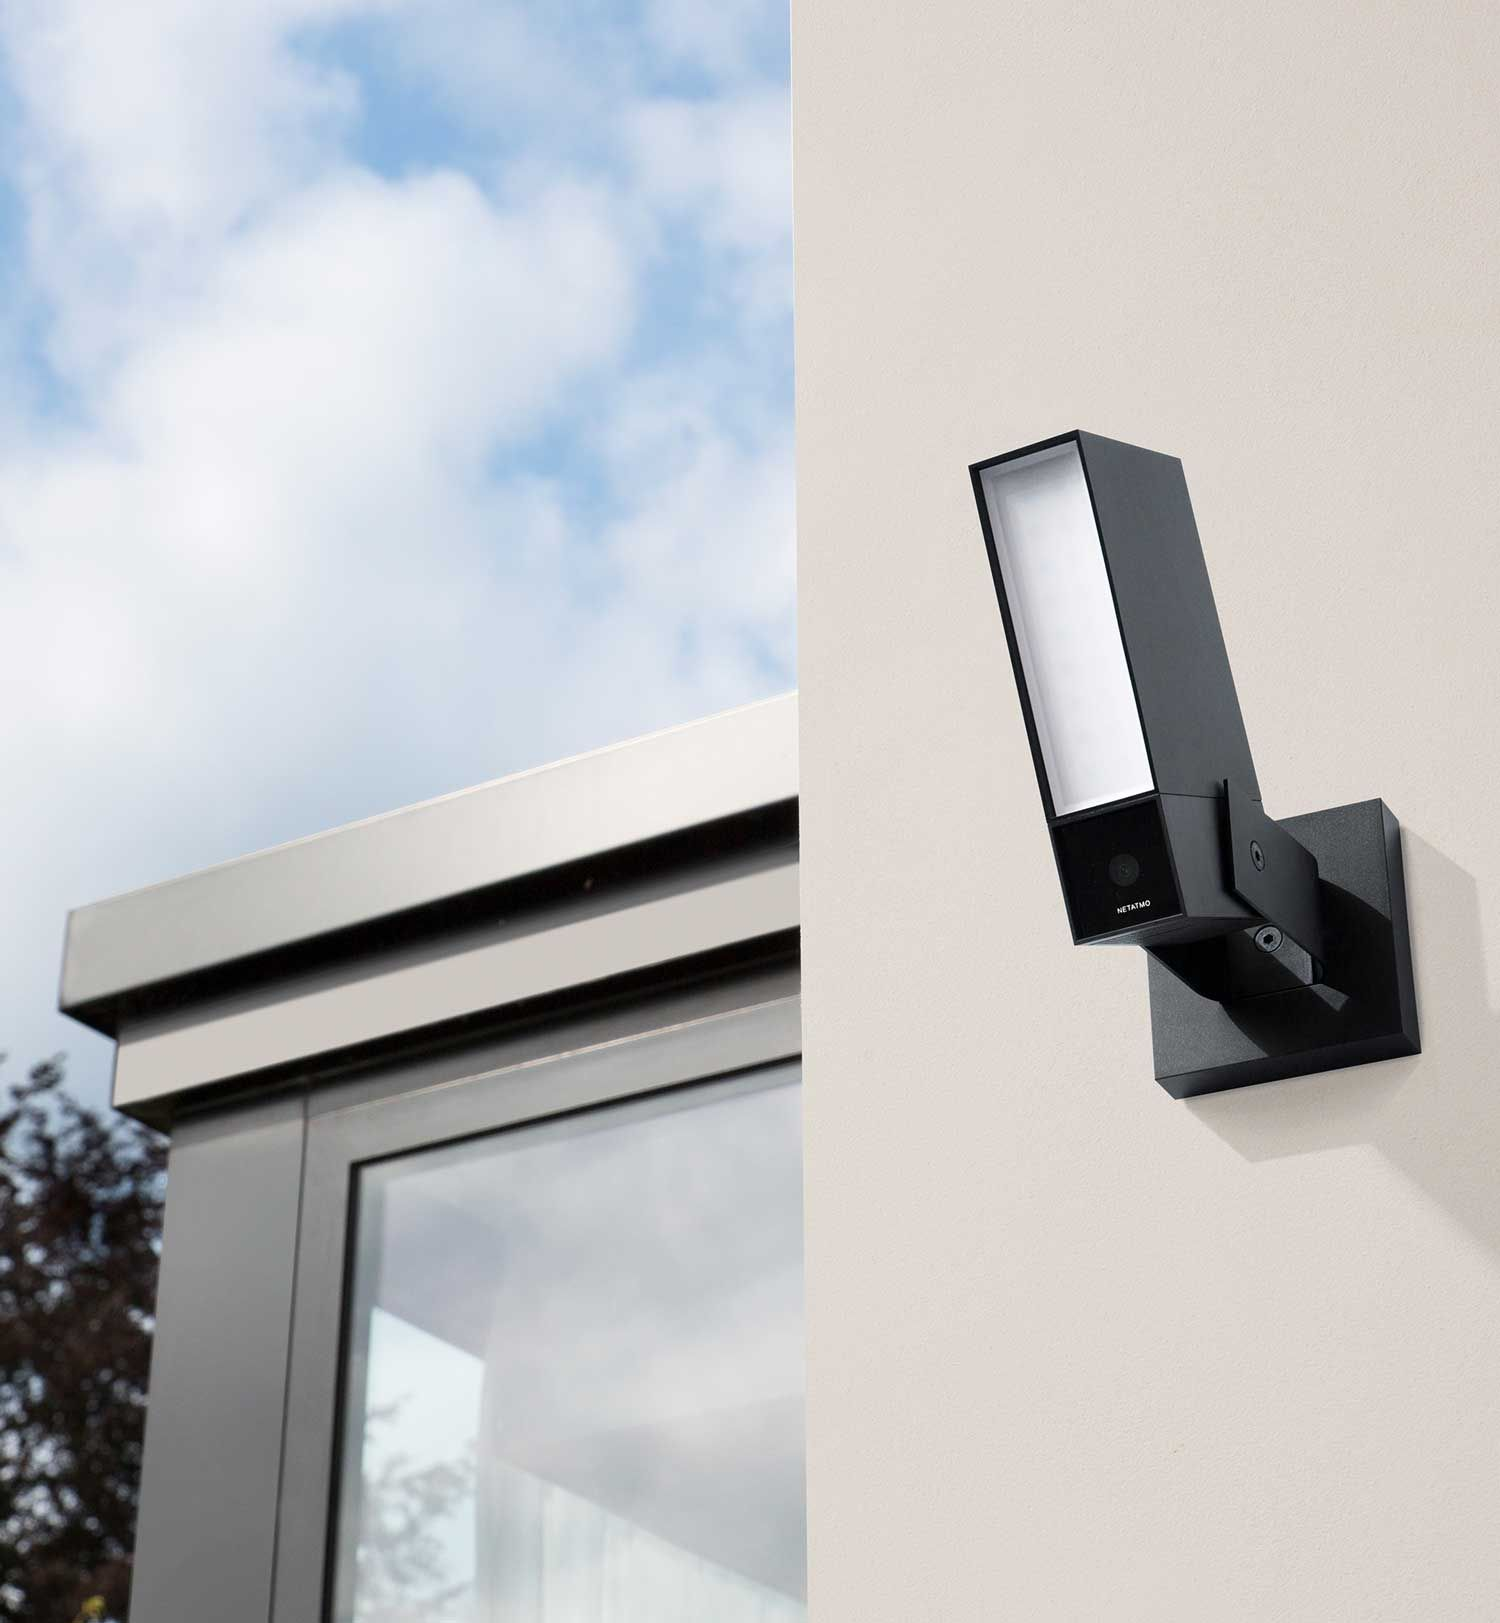 The Netatmo Presence outdoor security camera detects the presence ...